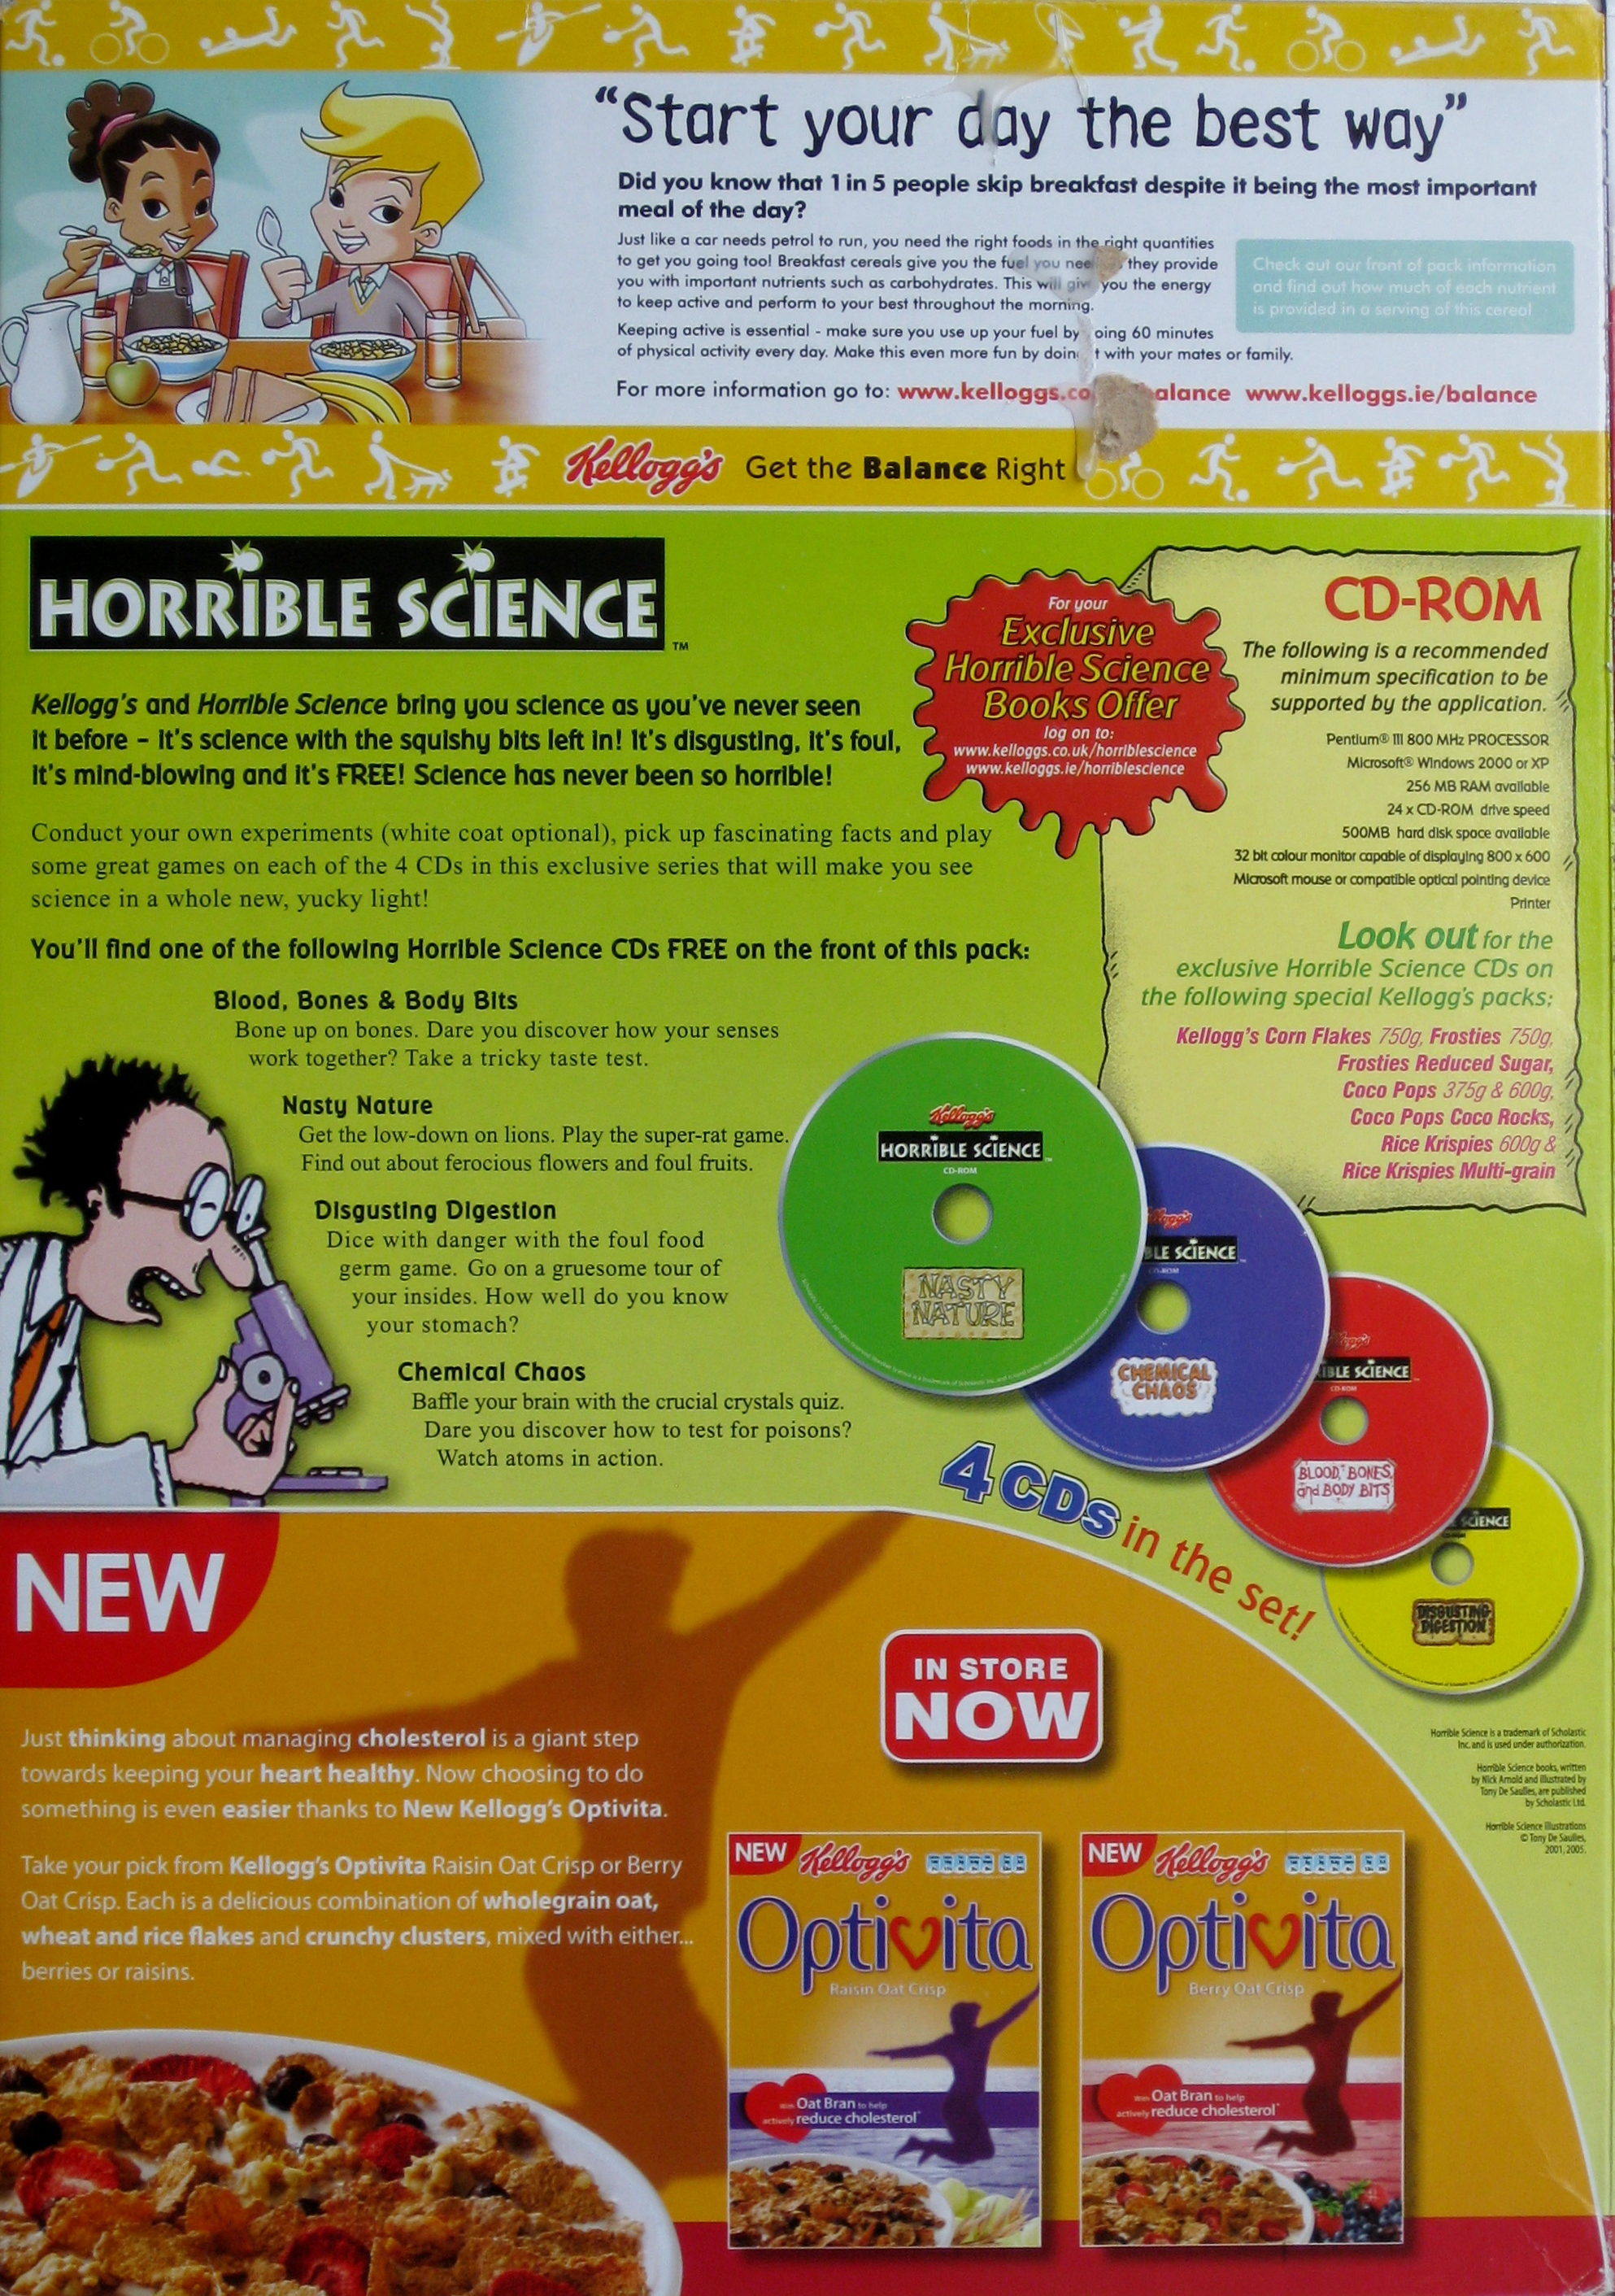 2006 Cornflakes Horrible Science CD Rom back